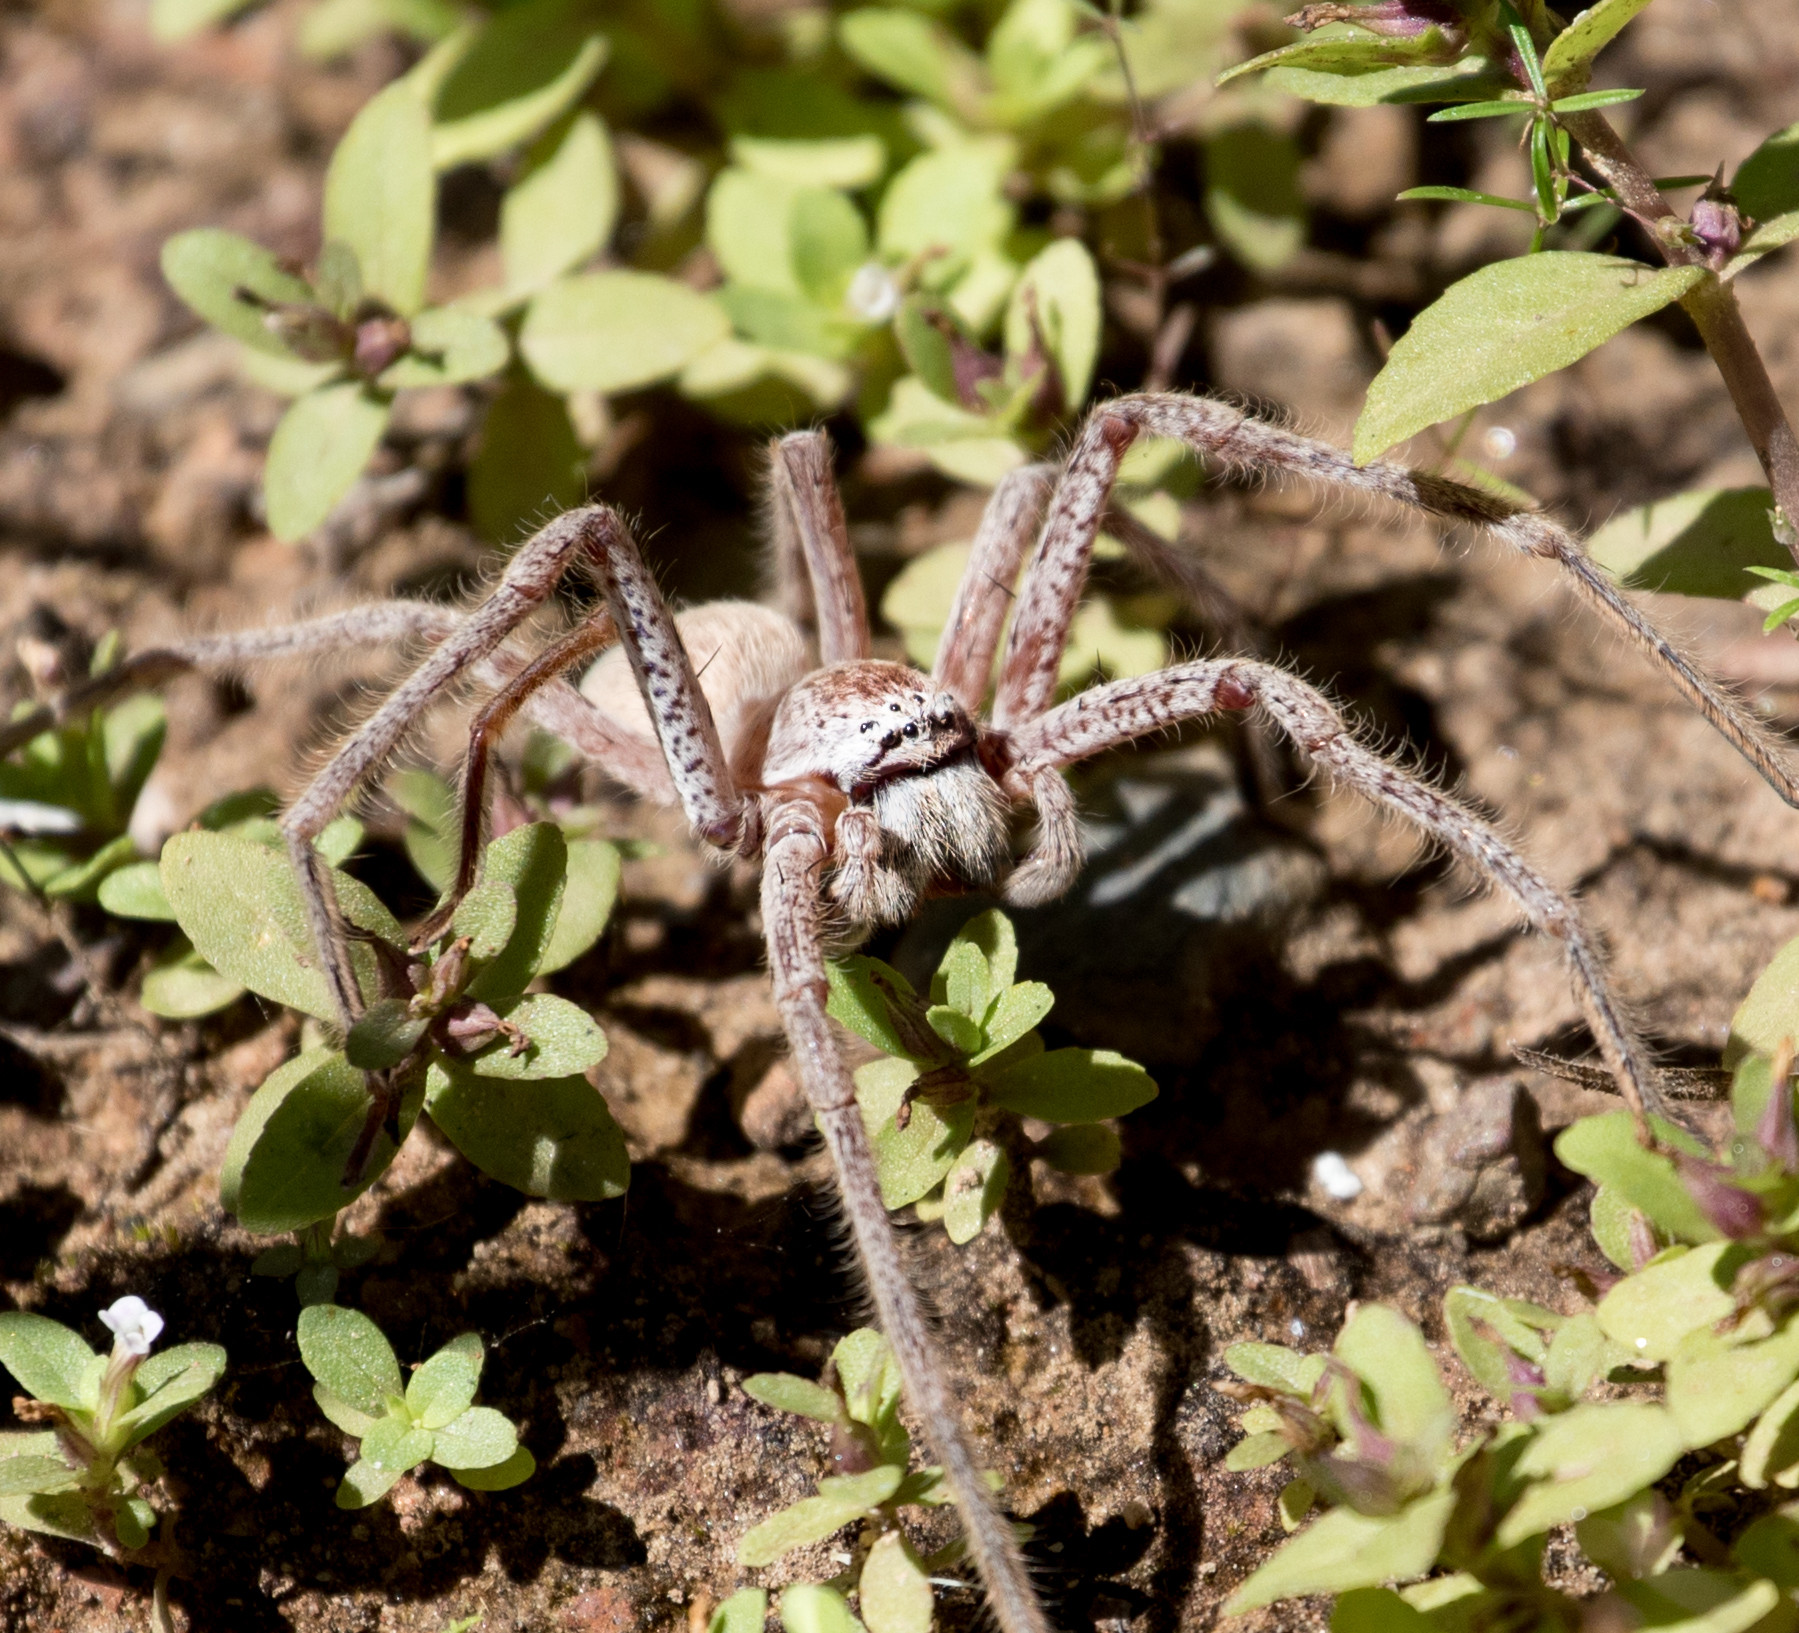 Spider, Litchfield National Park